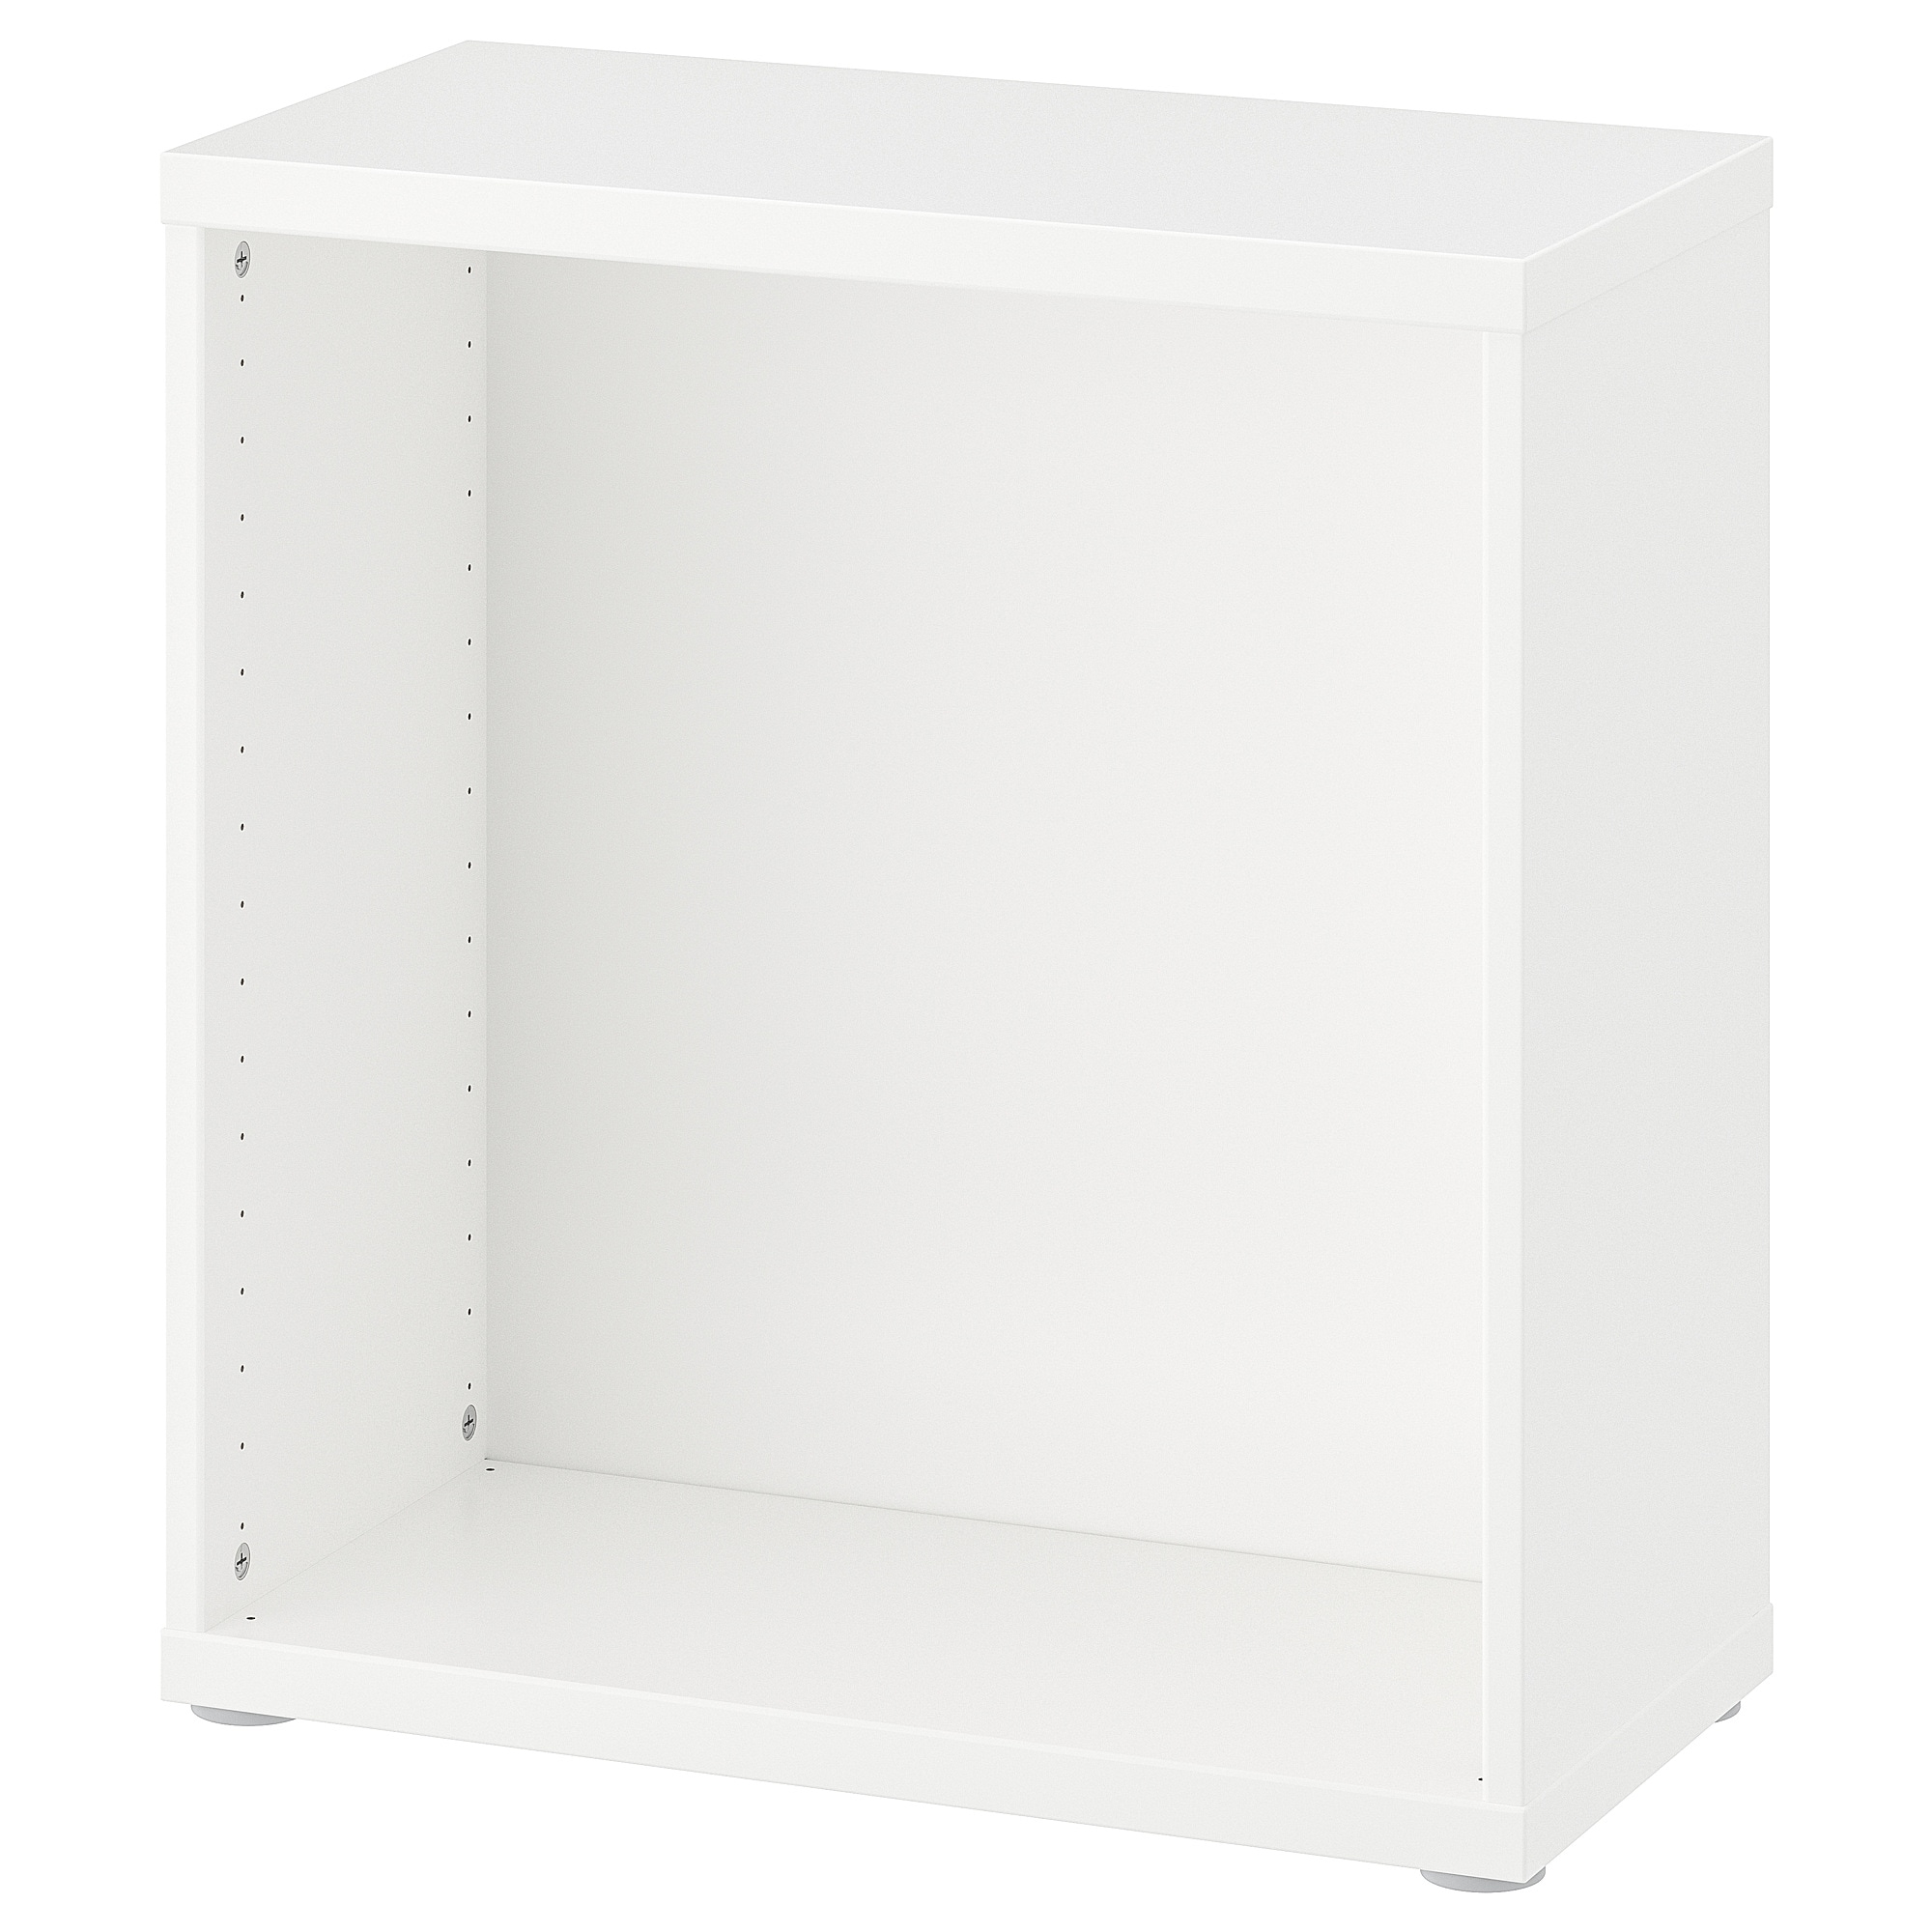 Ikea Stuva Deep Frame White Pictures | www.picturesboss.com